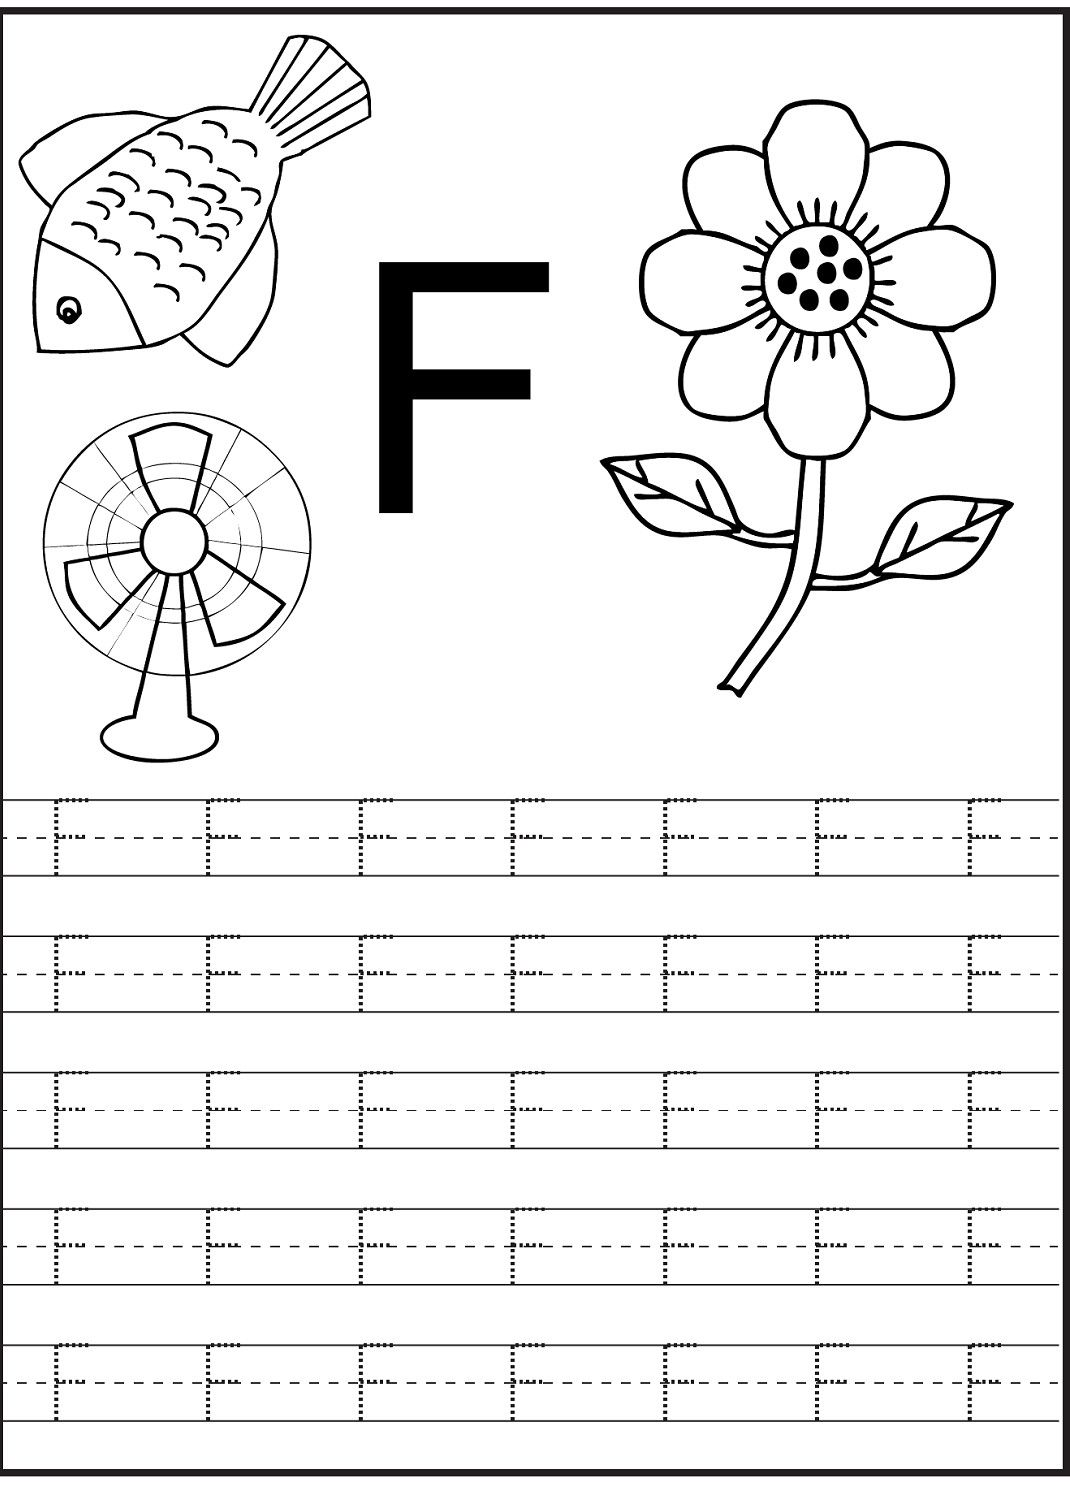 29 Letter F Preschool Printable Worksheets Coloring